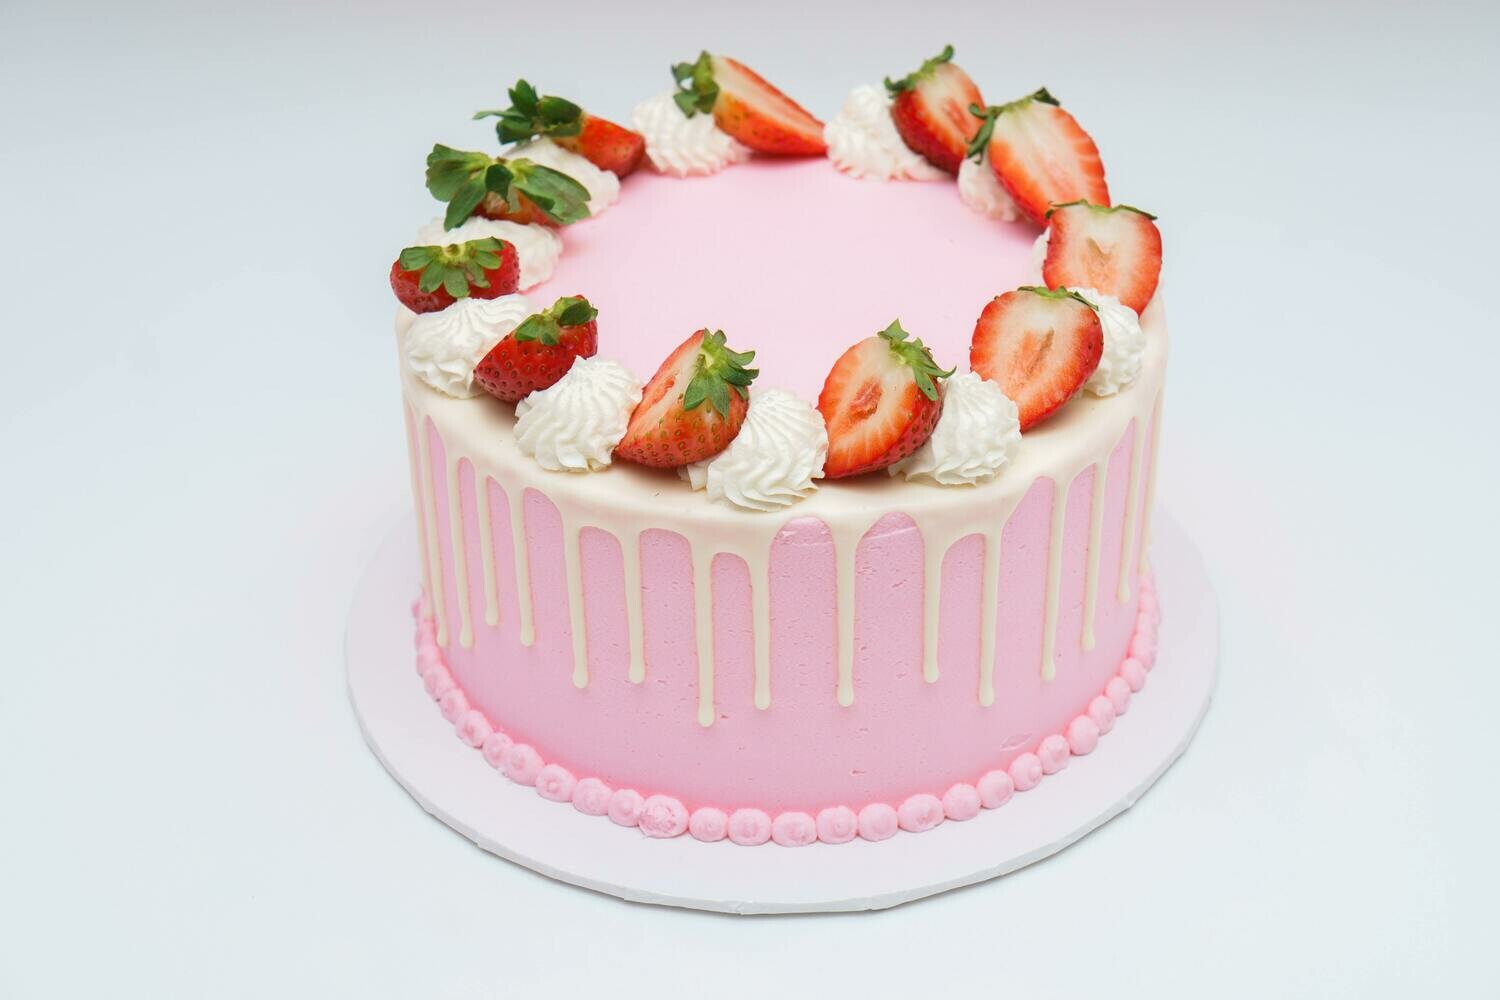 Sliced Strawberry Topped Drip Cake